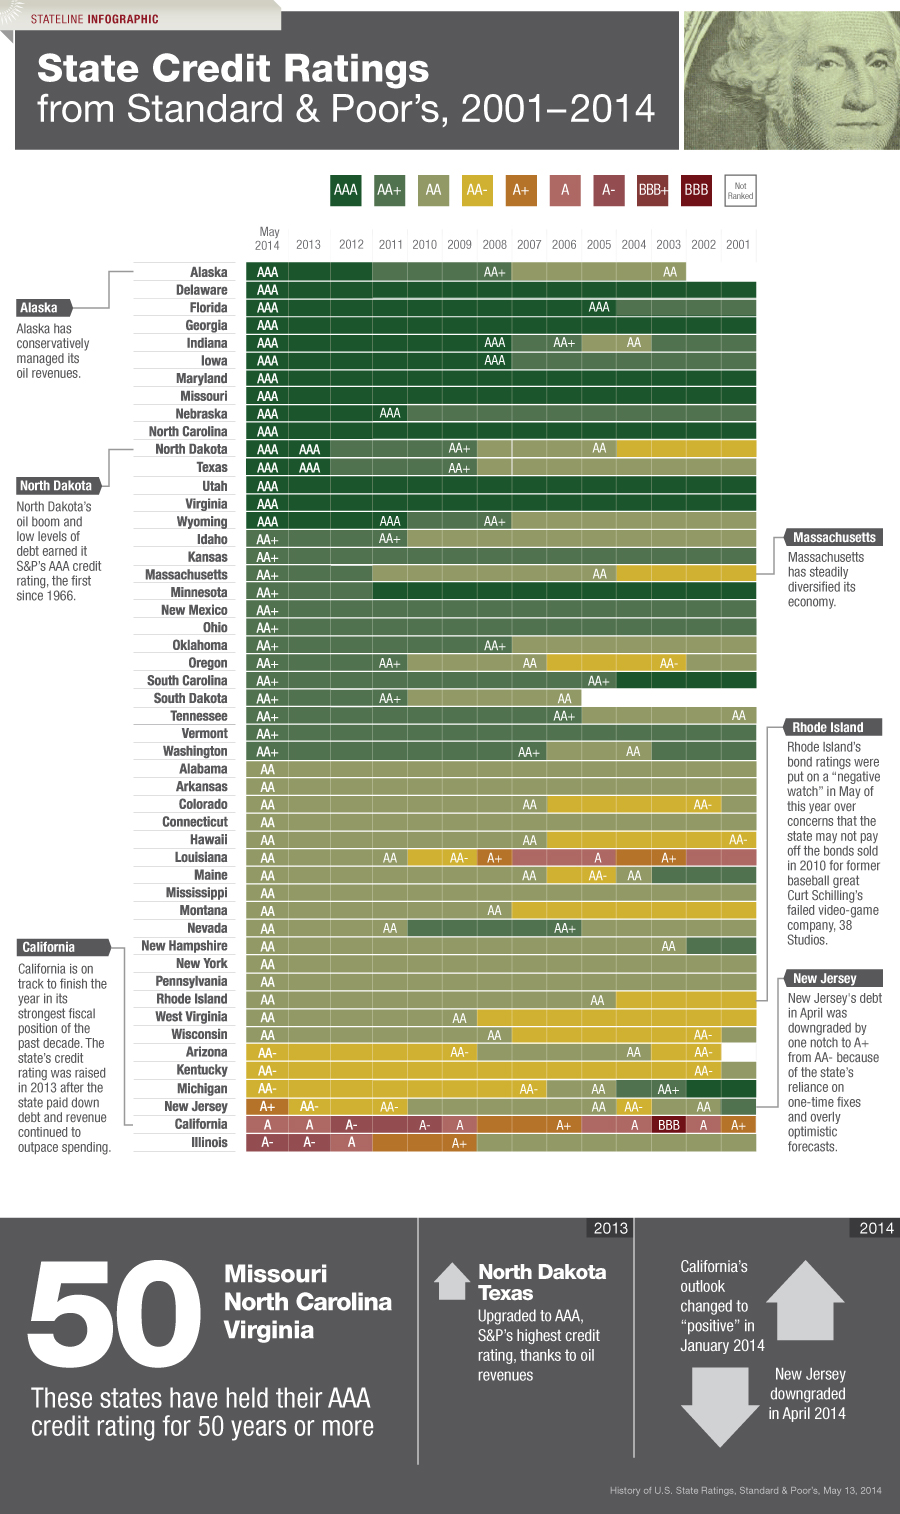 State Credit Ratings 2001-2014